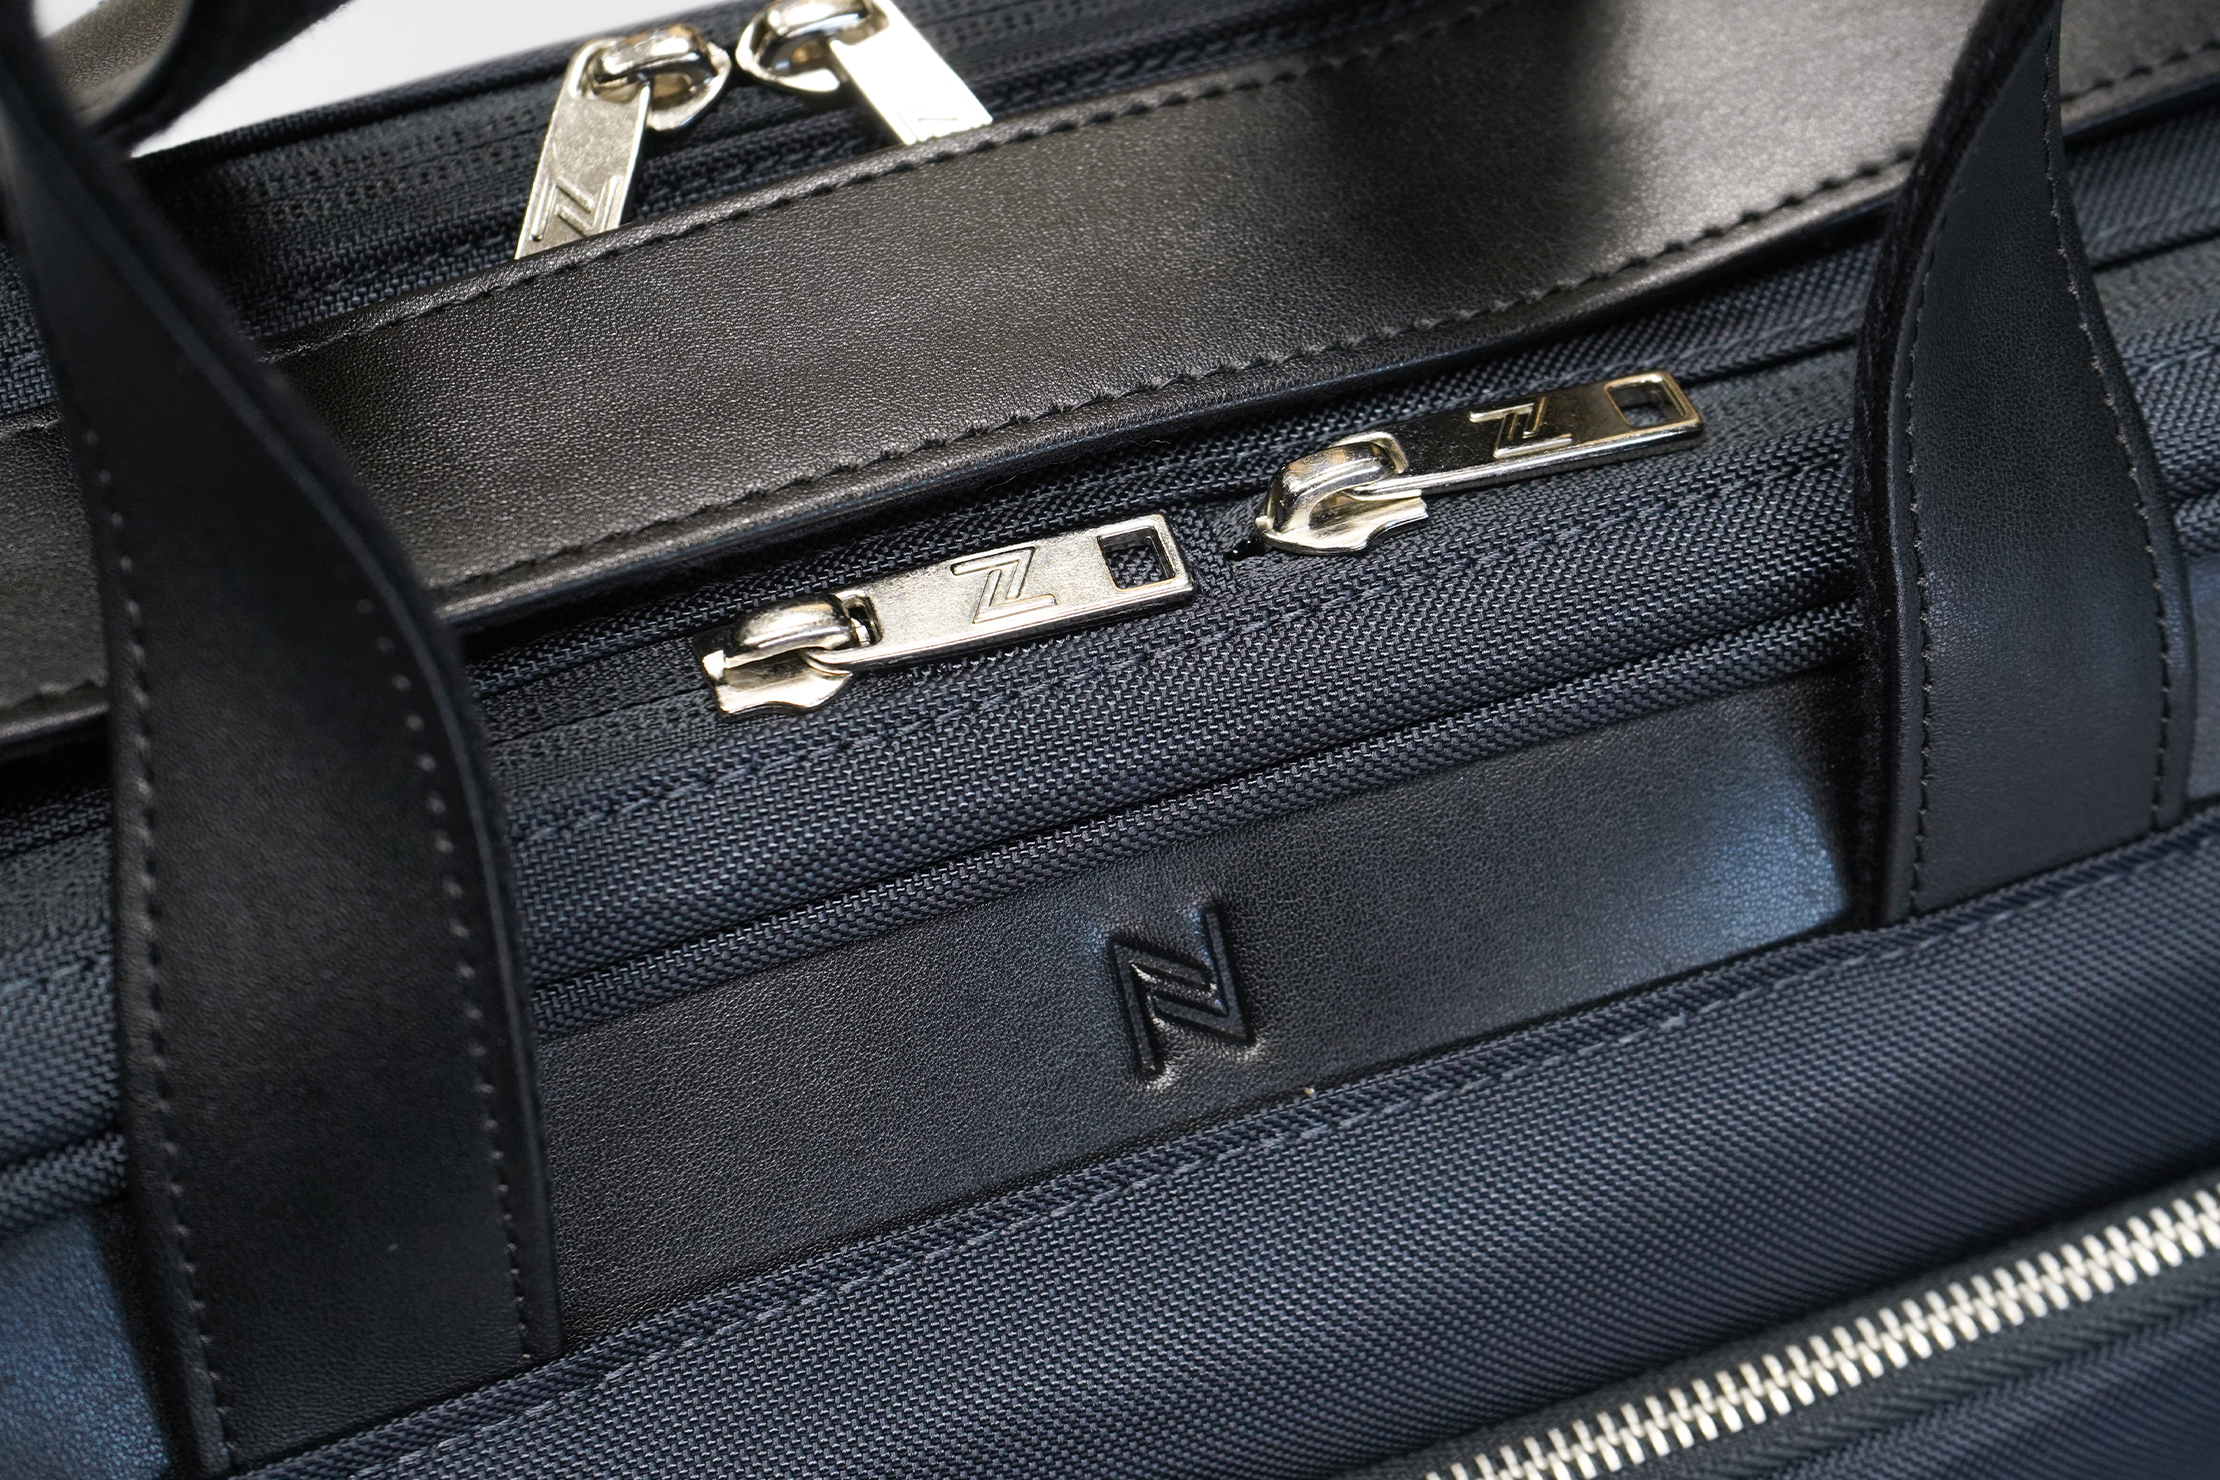 Nomad Lane Bento Bag Sport Edition materials and zippers